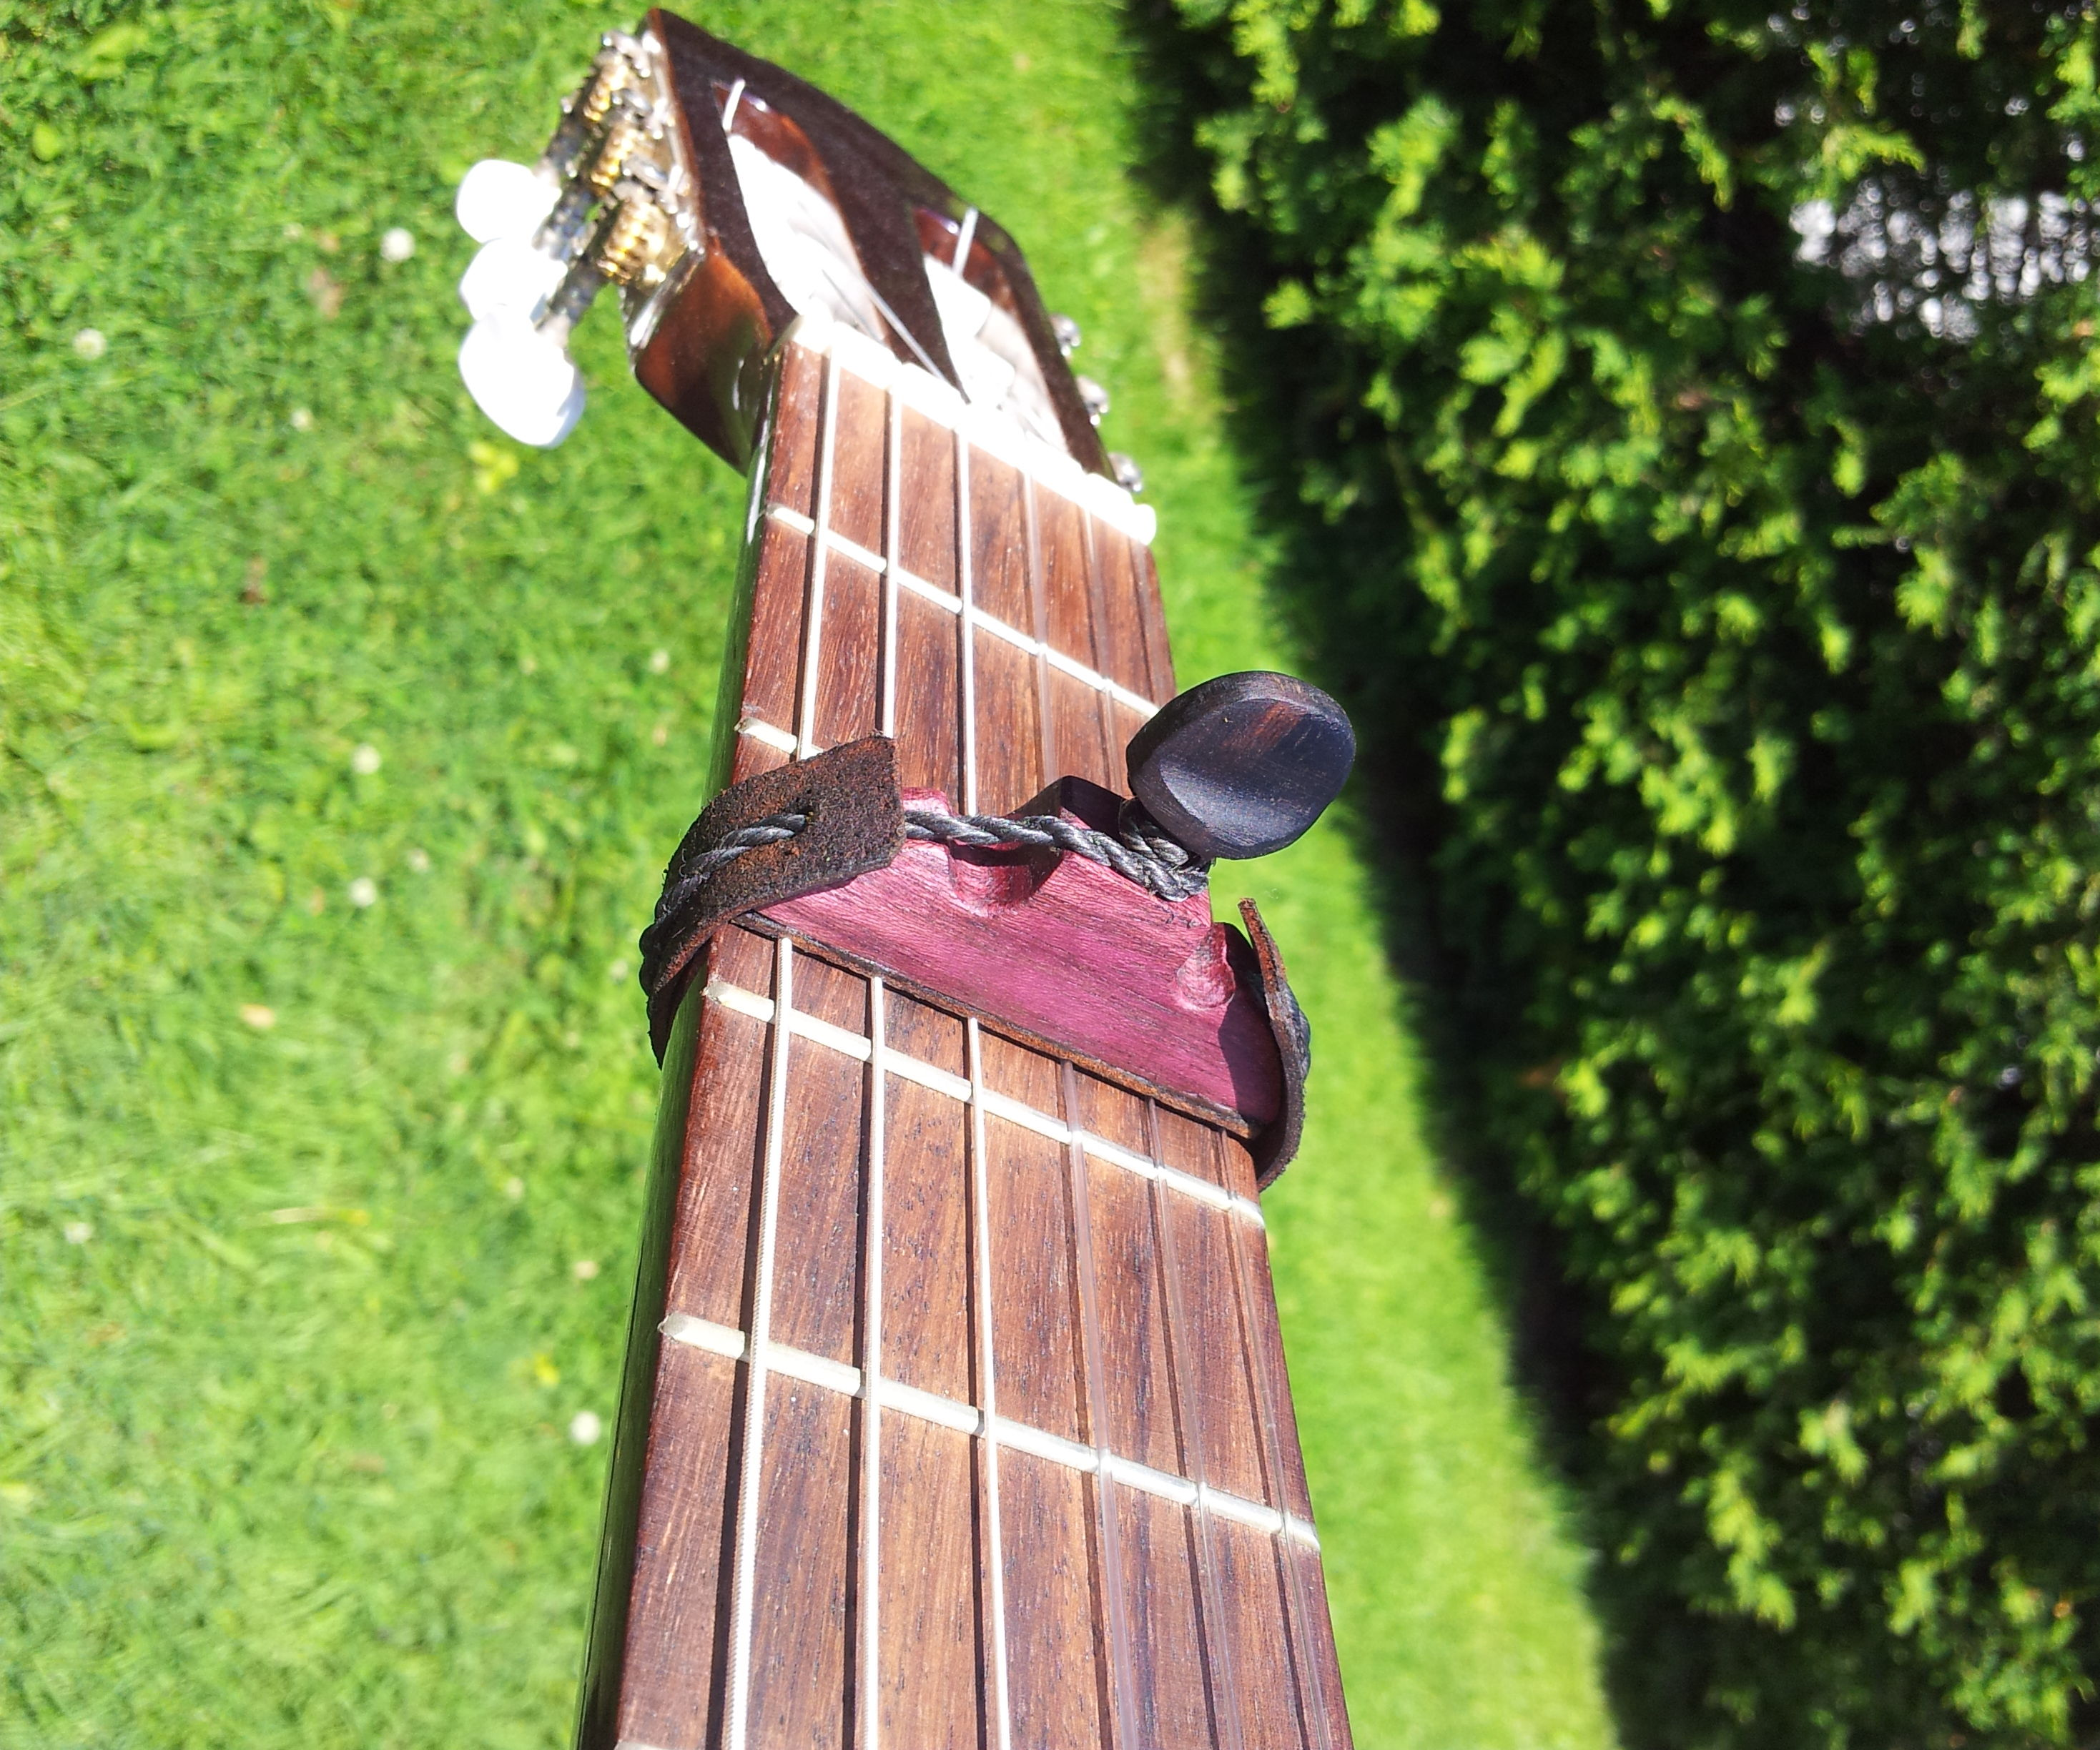 Need A Capo For Your Guitar? Build A Cejilla